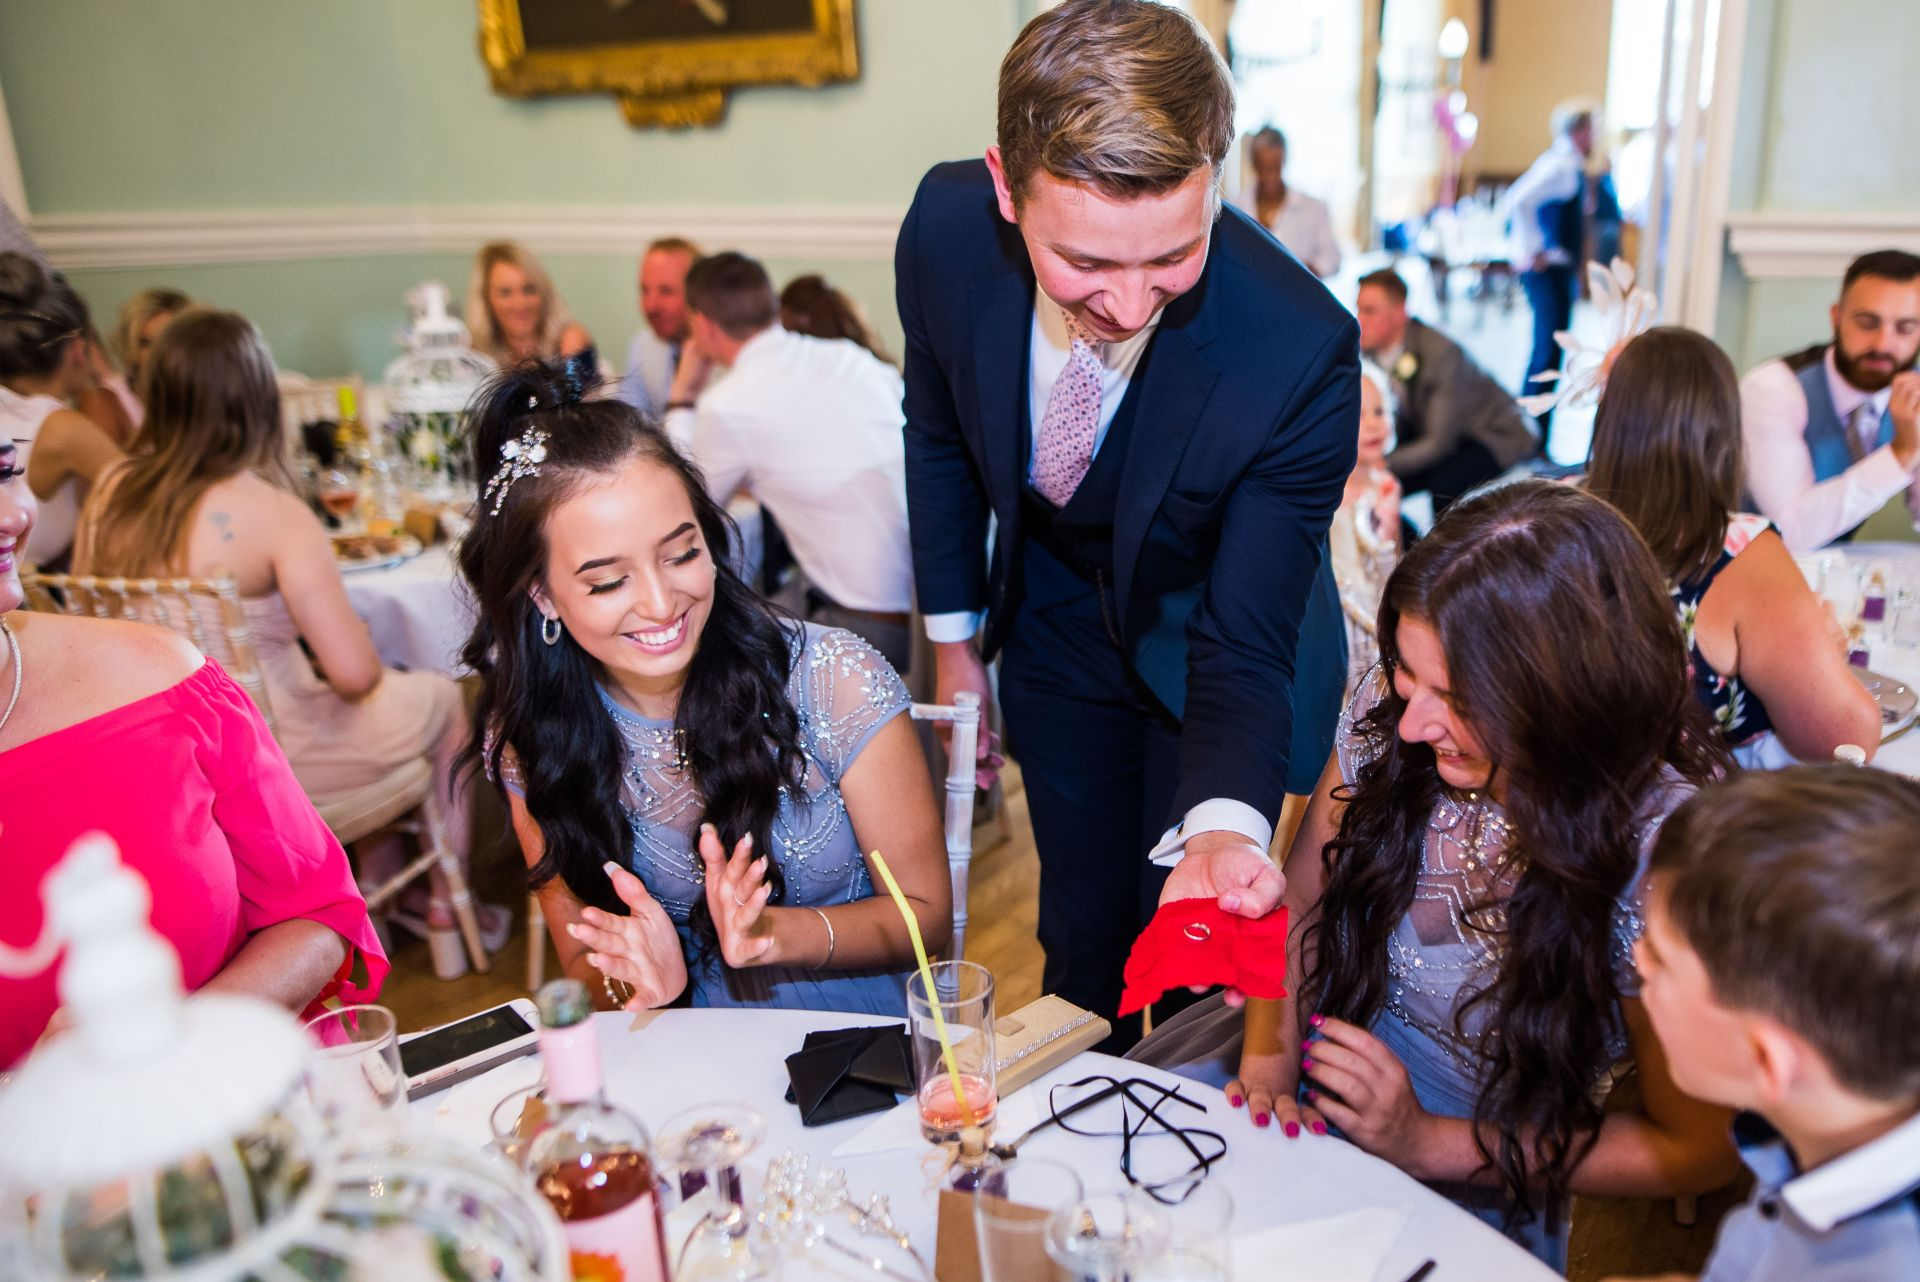 Magician wowing guests at a wedding